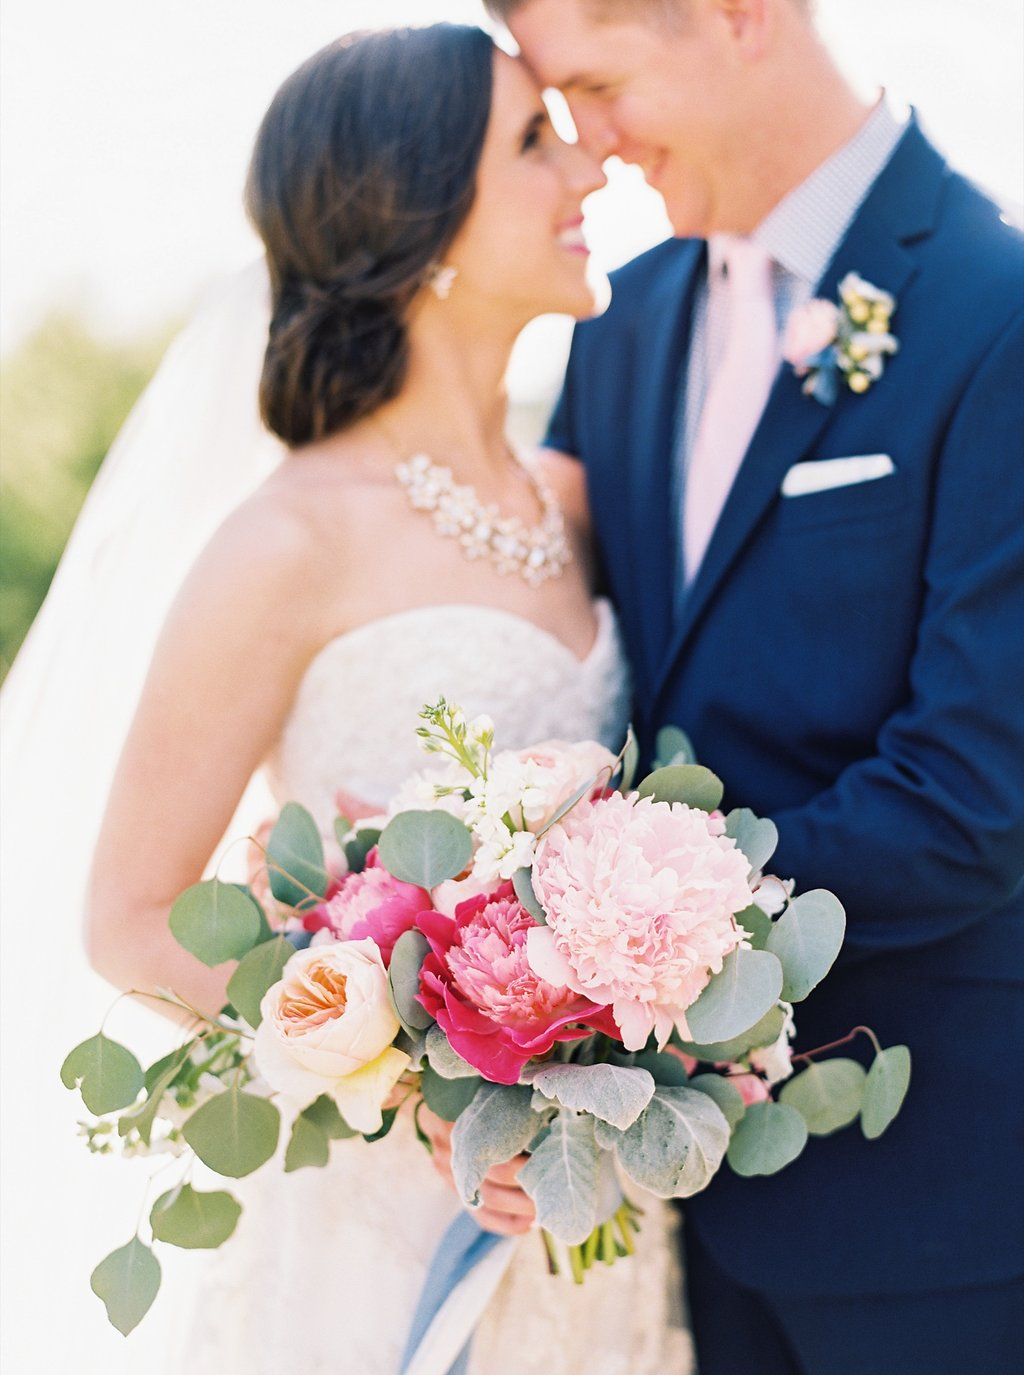 Blush and Fuchsia Poeny Bridal Bouquet with Peach Juliet Garden Roses and Silver Dollar Eucalyptus | Sweet Newlywed Photos after our Wedding Ceremony | Blush and Navy Wedding with Fuchsia, French Blue and Gold Accents | Simply Jessica Marie's Southern Wedding at Gettysvue Golf Course and Country Club in Knoxville Tennessee | Photo by Perry Vaile Photography